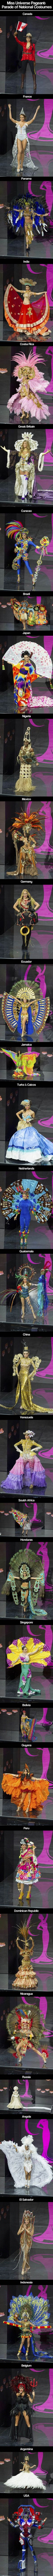 Miss Universe Pageant Parade of National Costumes. This is kind of great. Wait until you see USA.